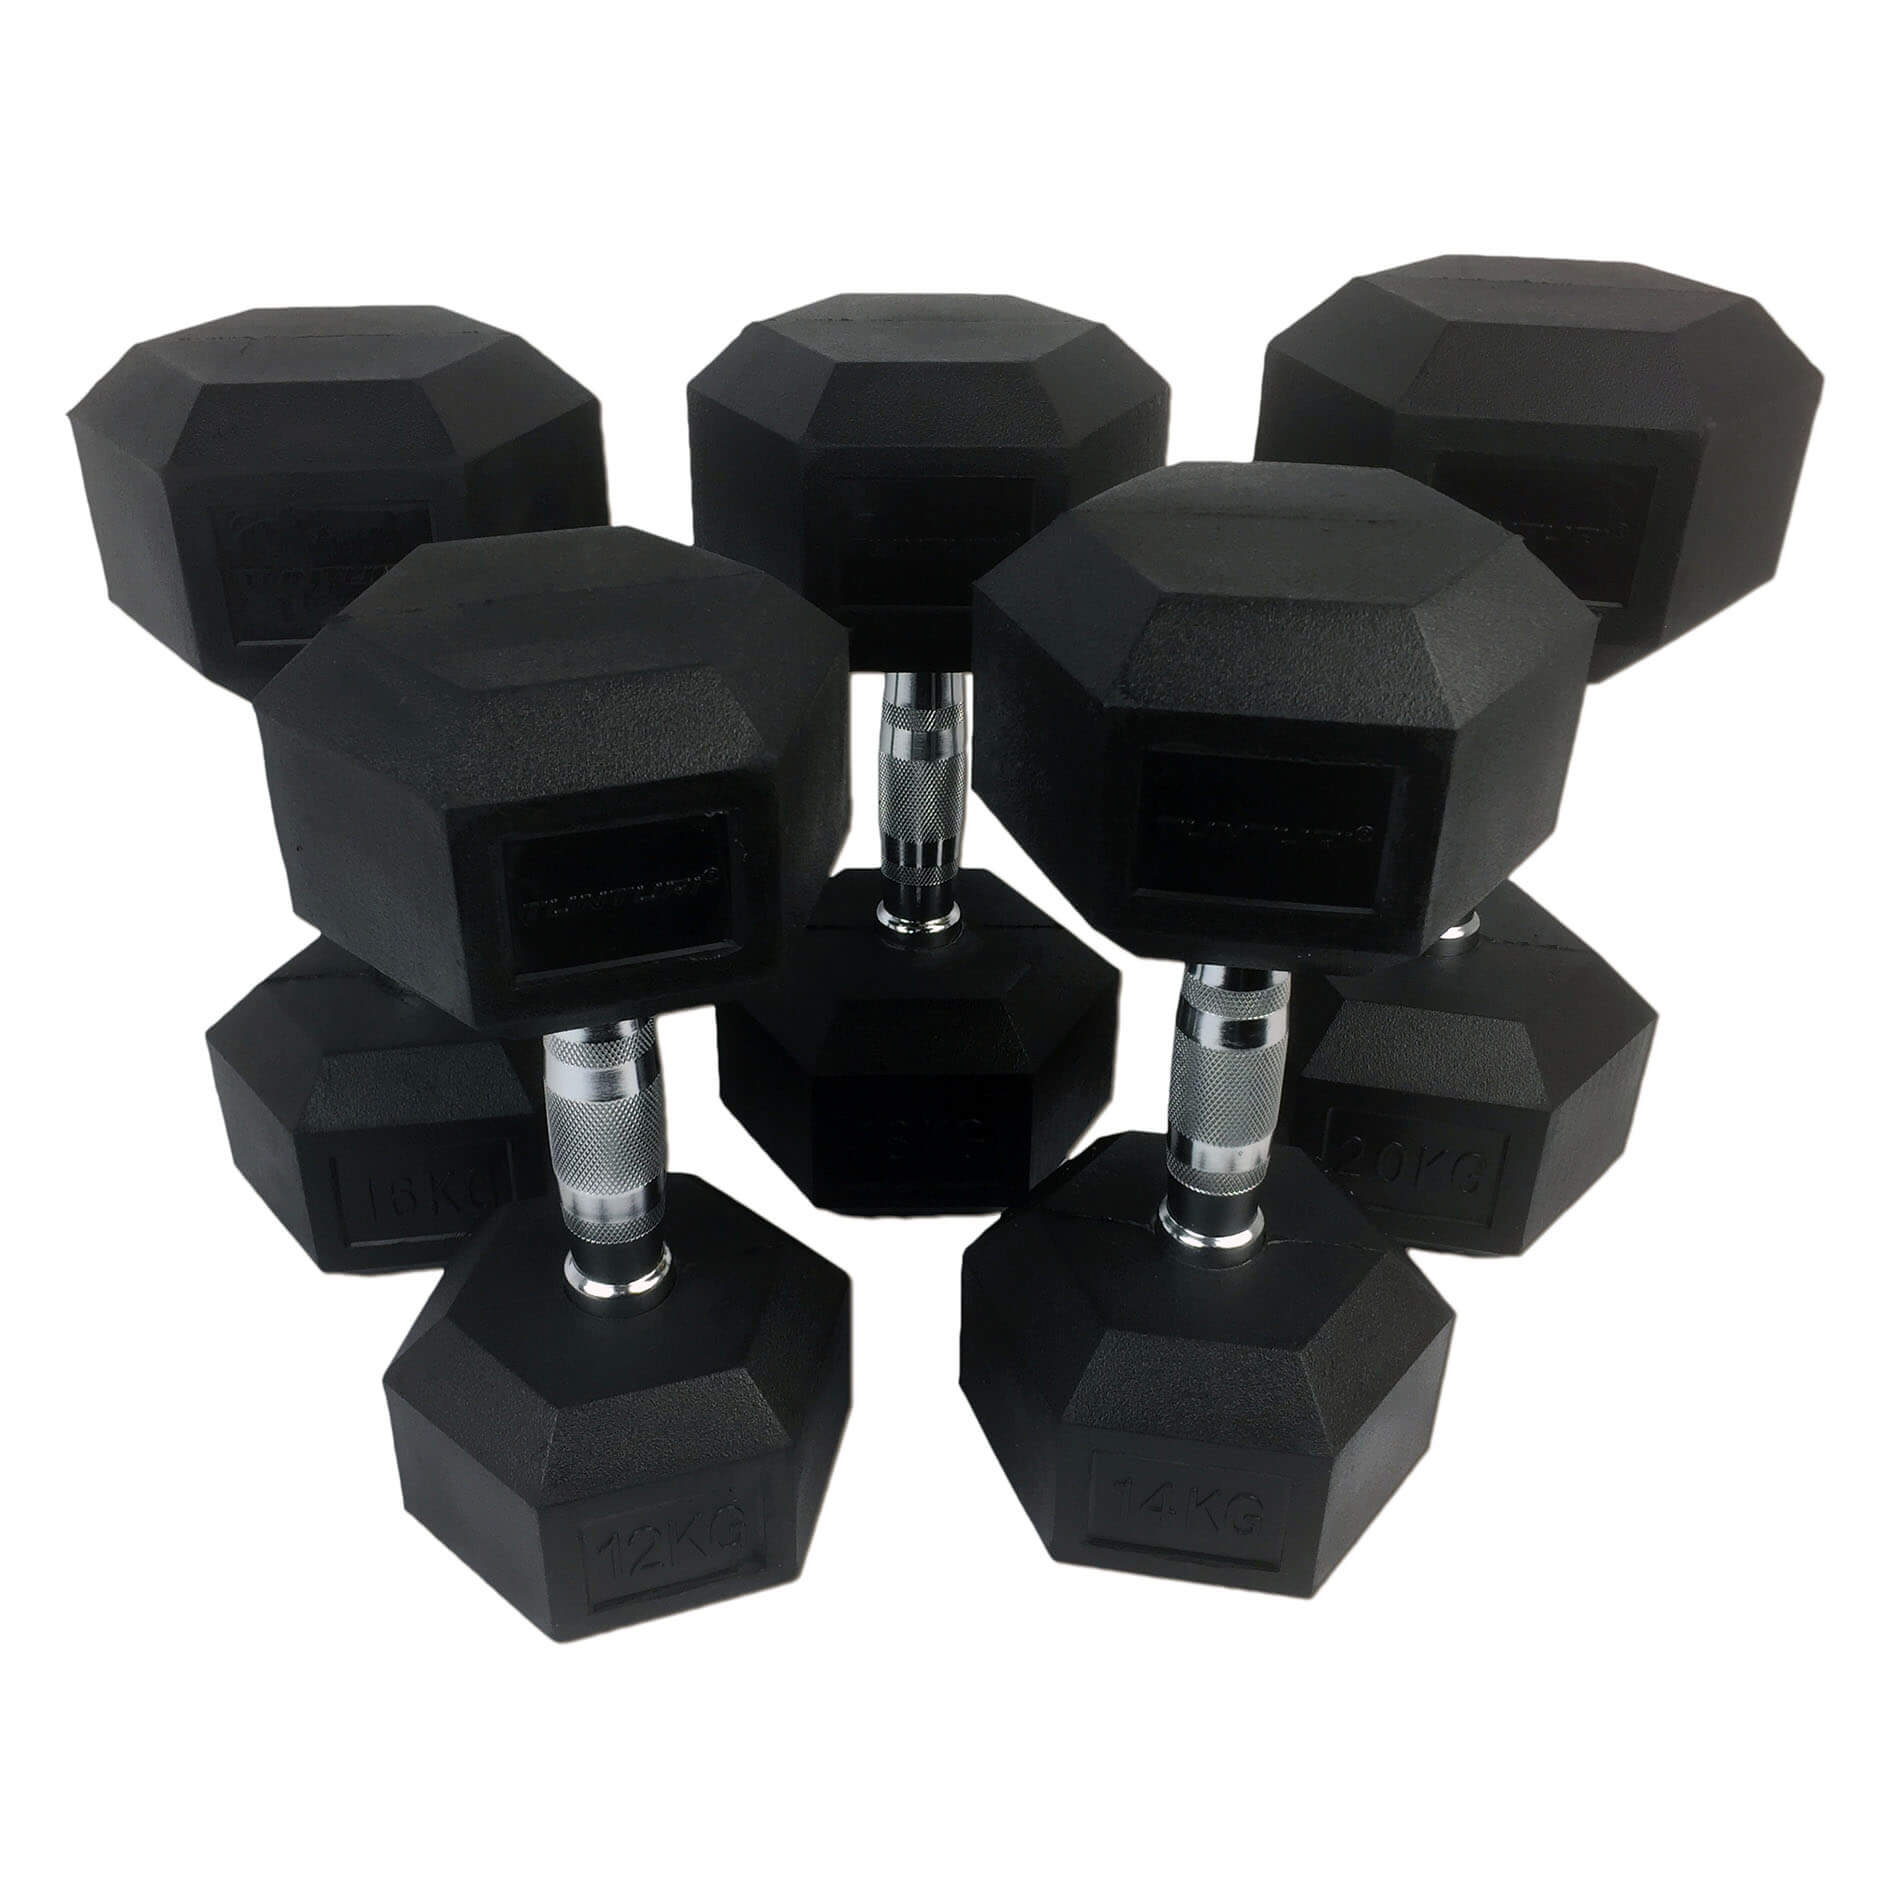 Rubber Dumbbell Set - Dumbellset